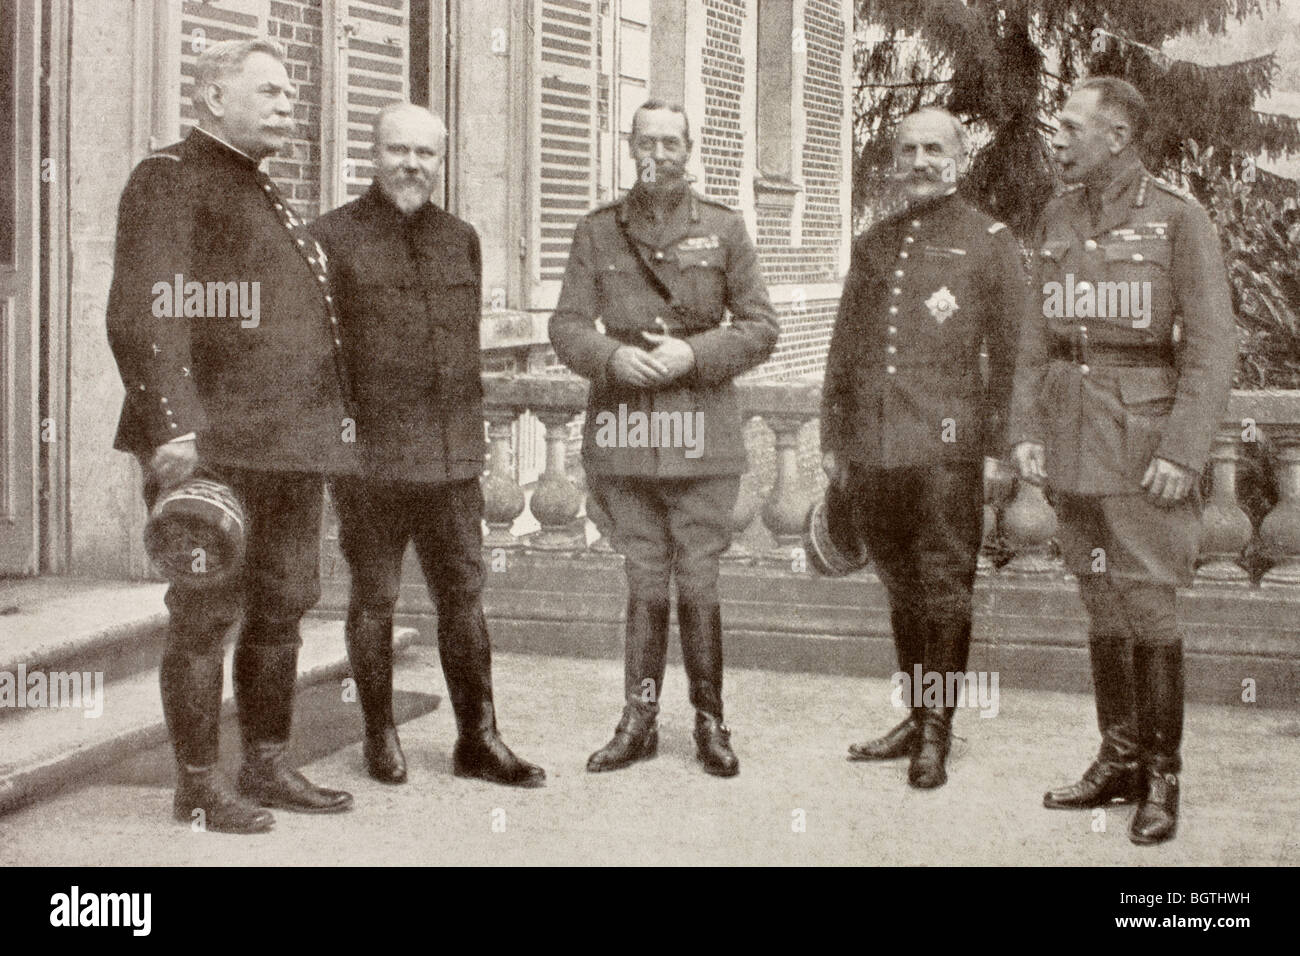 A meeting at British General Headquarters behind the Somme Front in France, 1916. SEE DESCRIPTION FOR DETAILS. - Stock Image